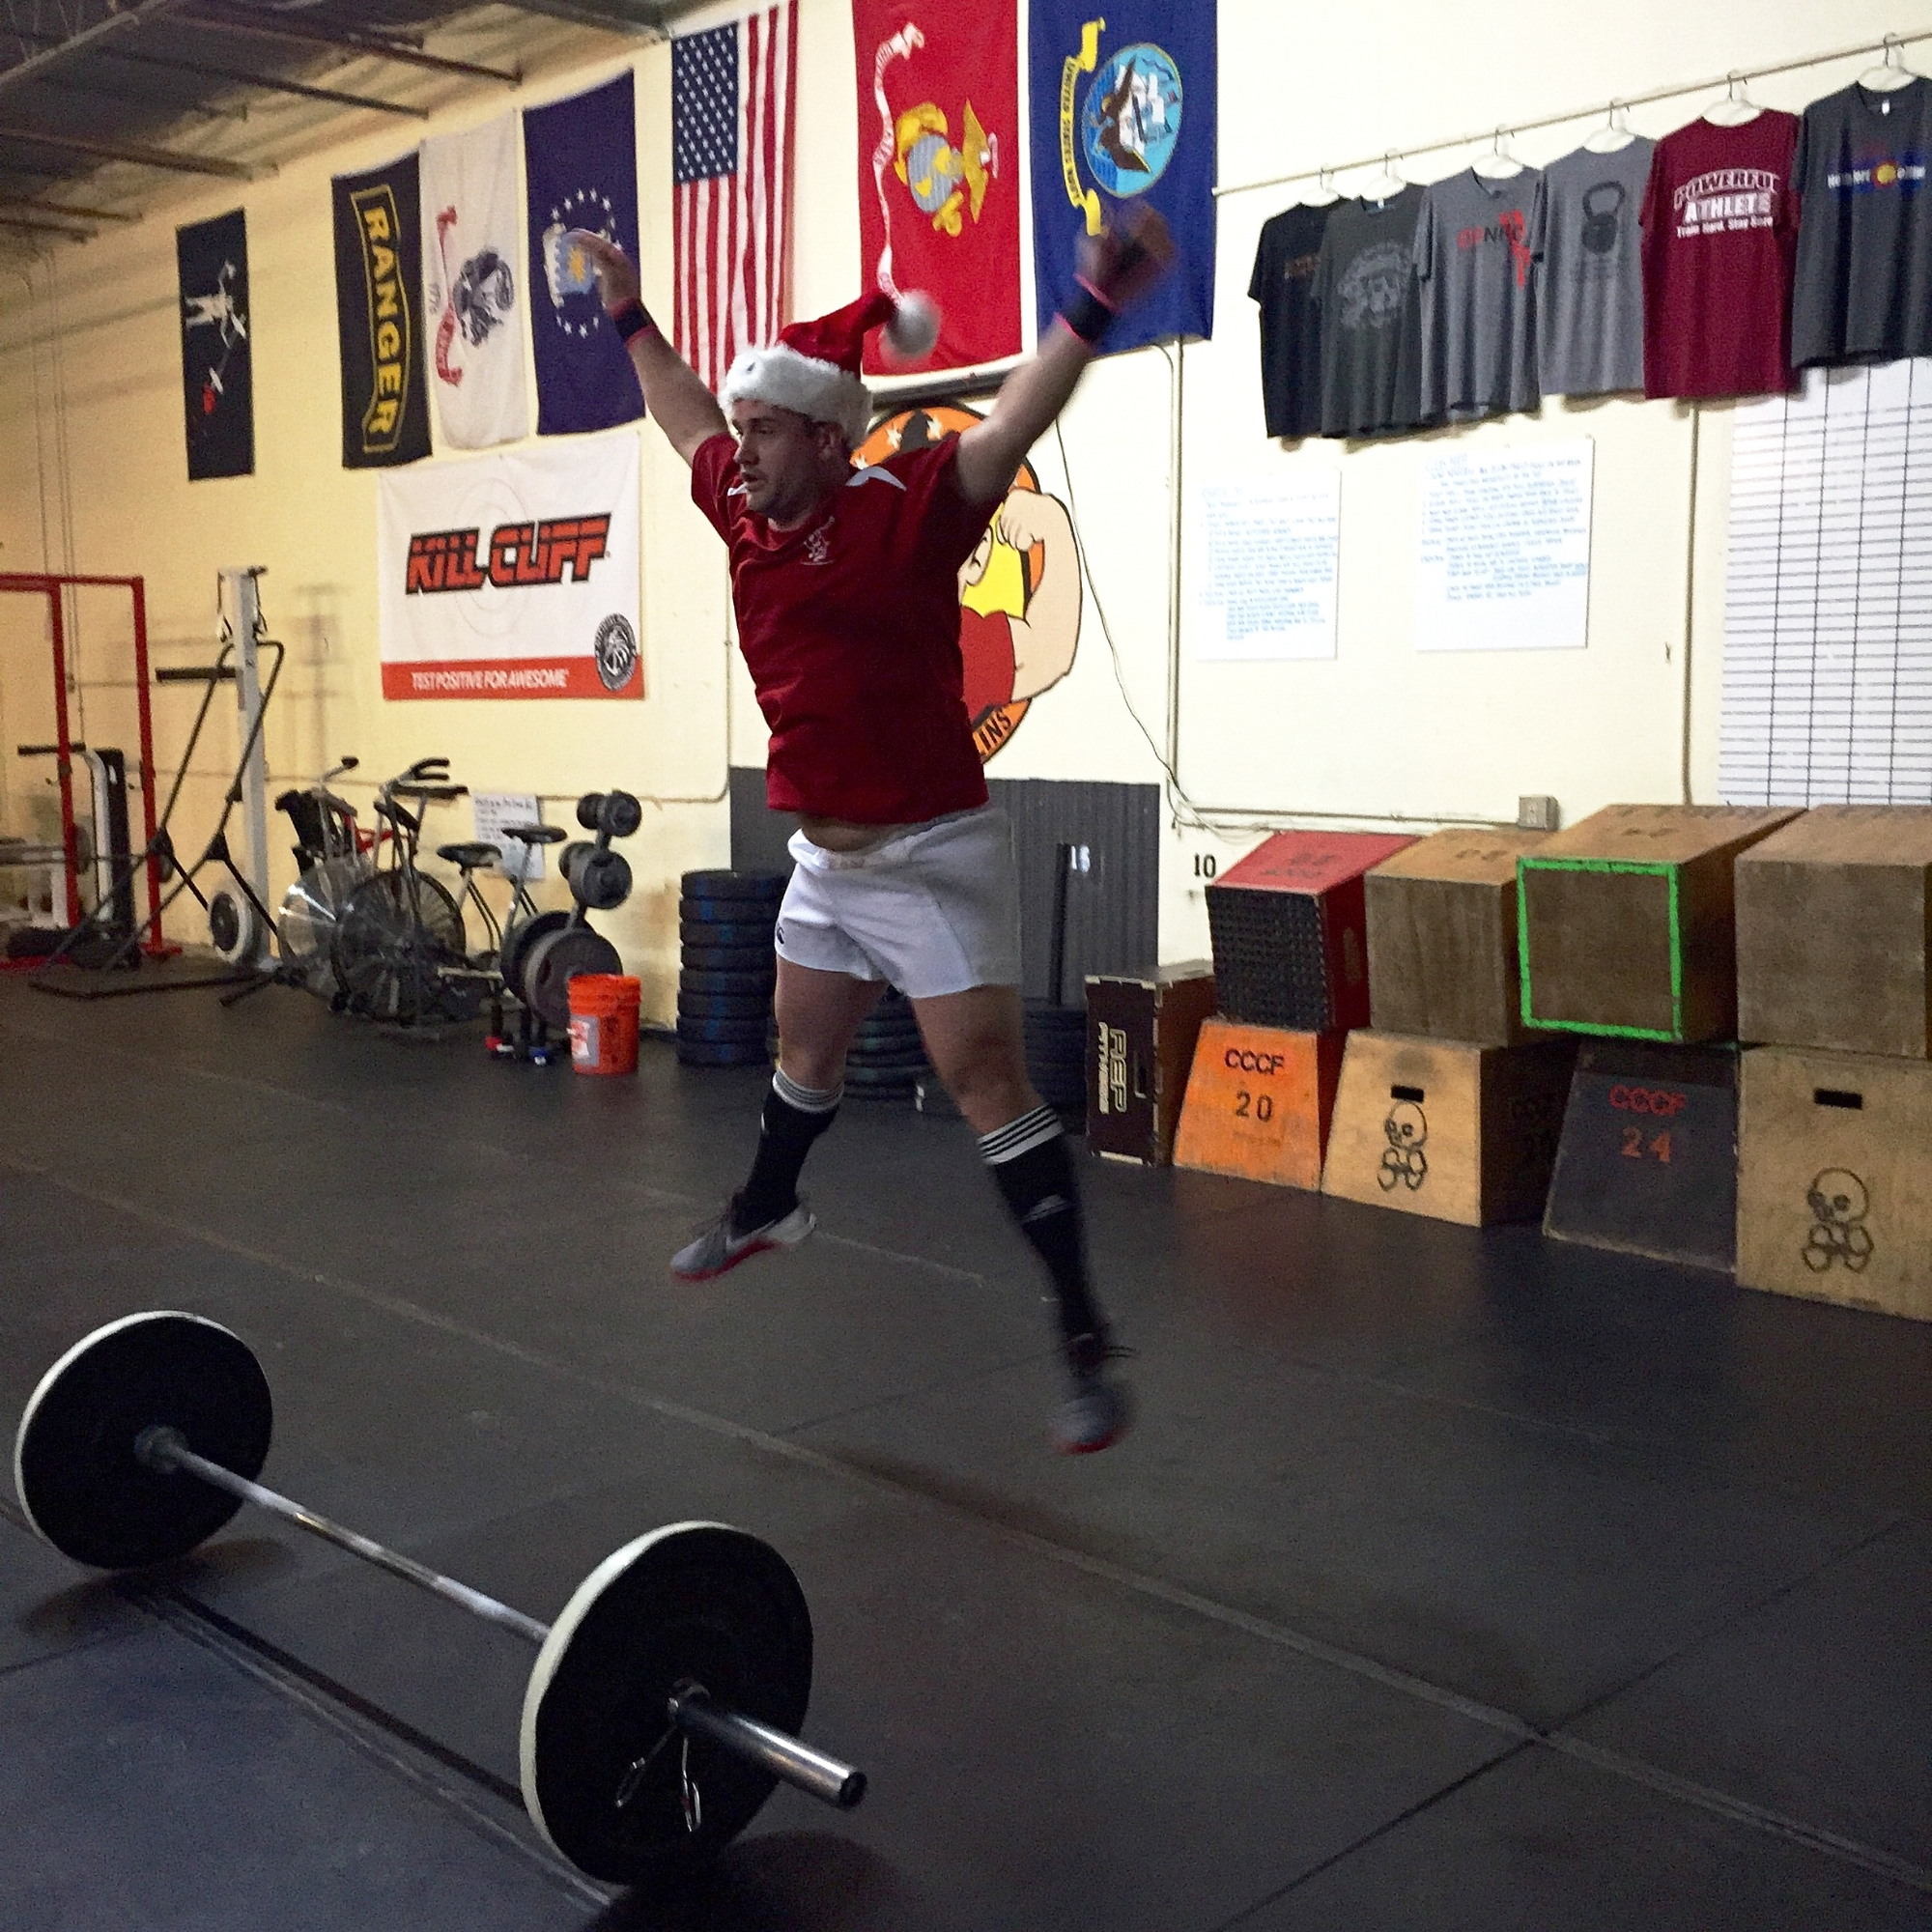 12 Days Of Christmas Crossfit Wod.Choice City Crossfit Gym Fort Collins Crossfit Classes